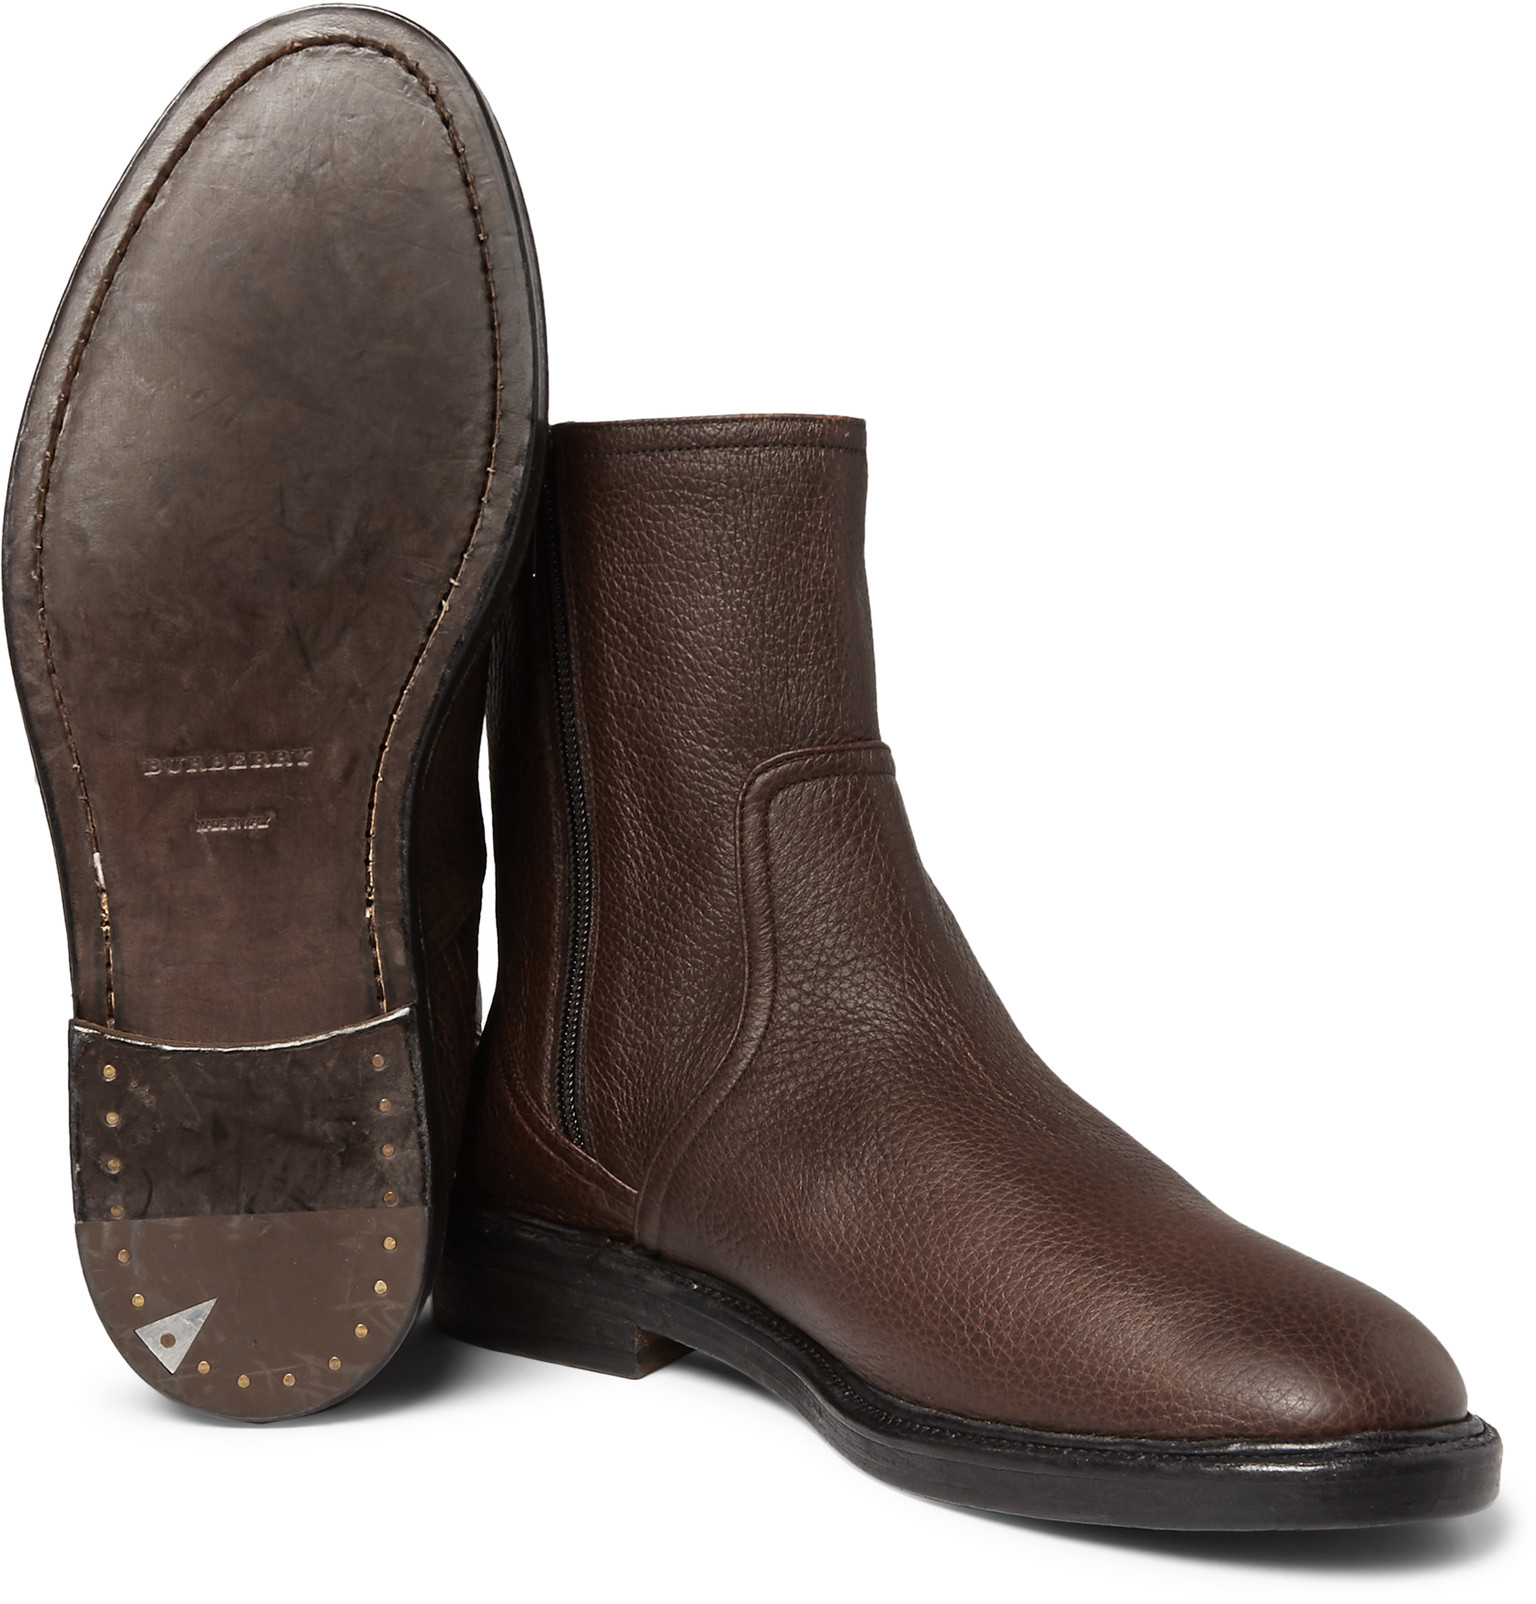 burberry towersley grained leather boots in brown for